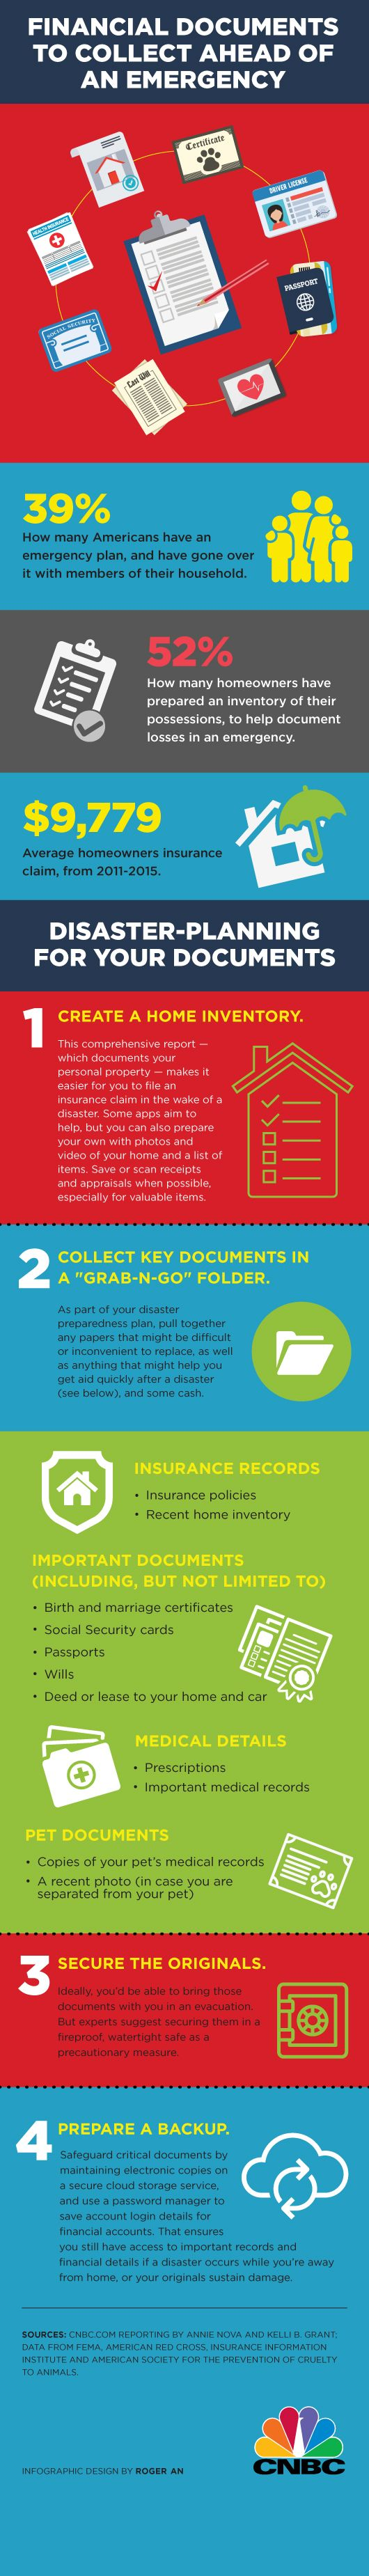 Emergency documents INFOGRAPHIC